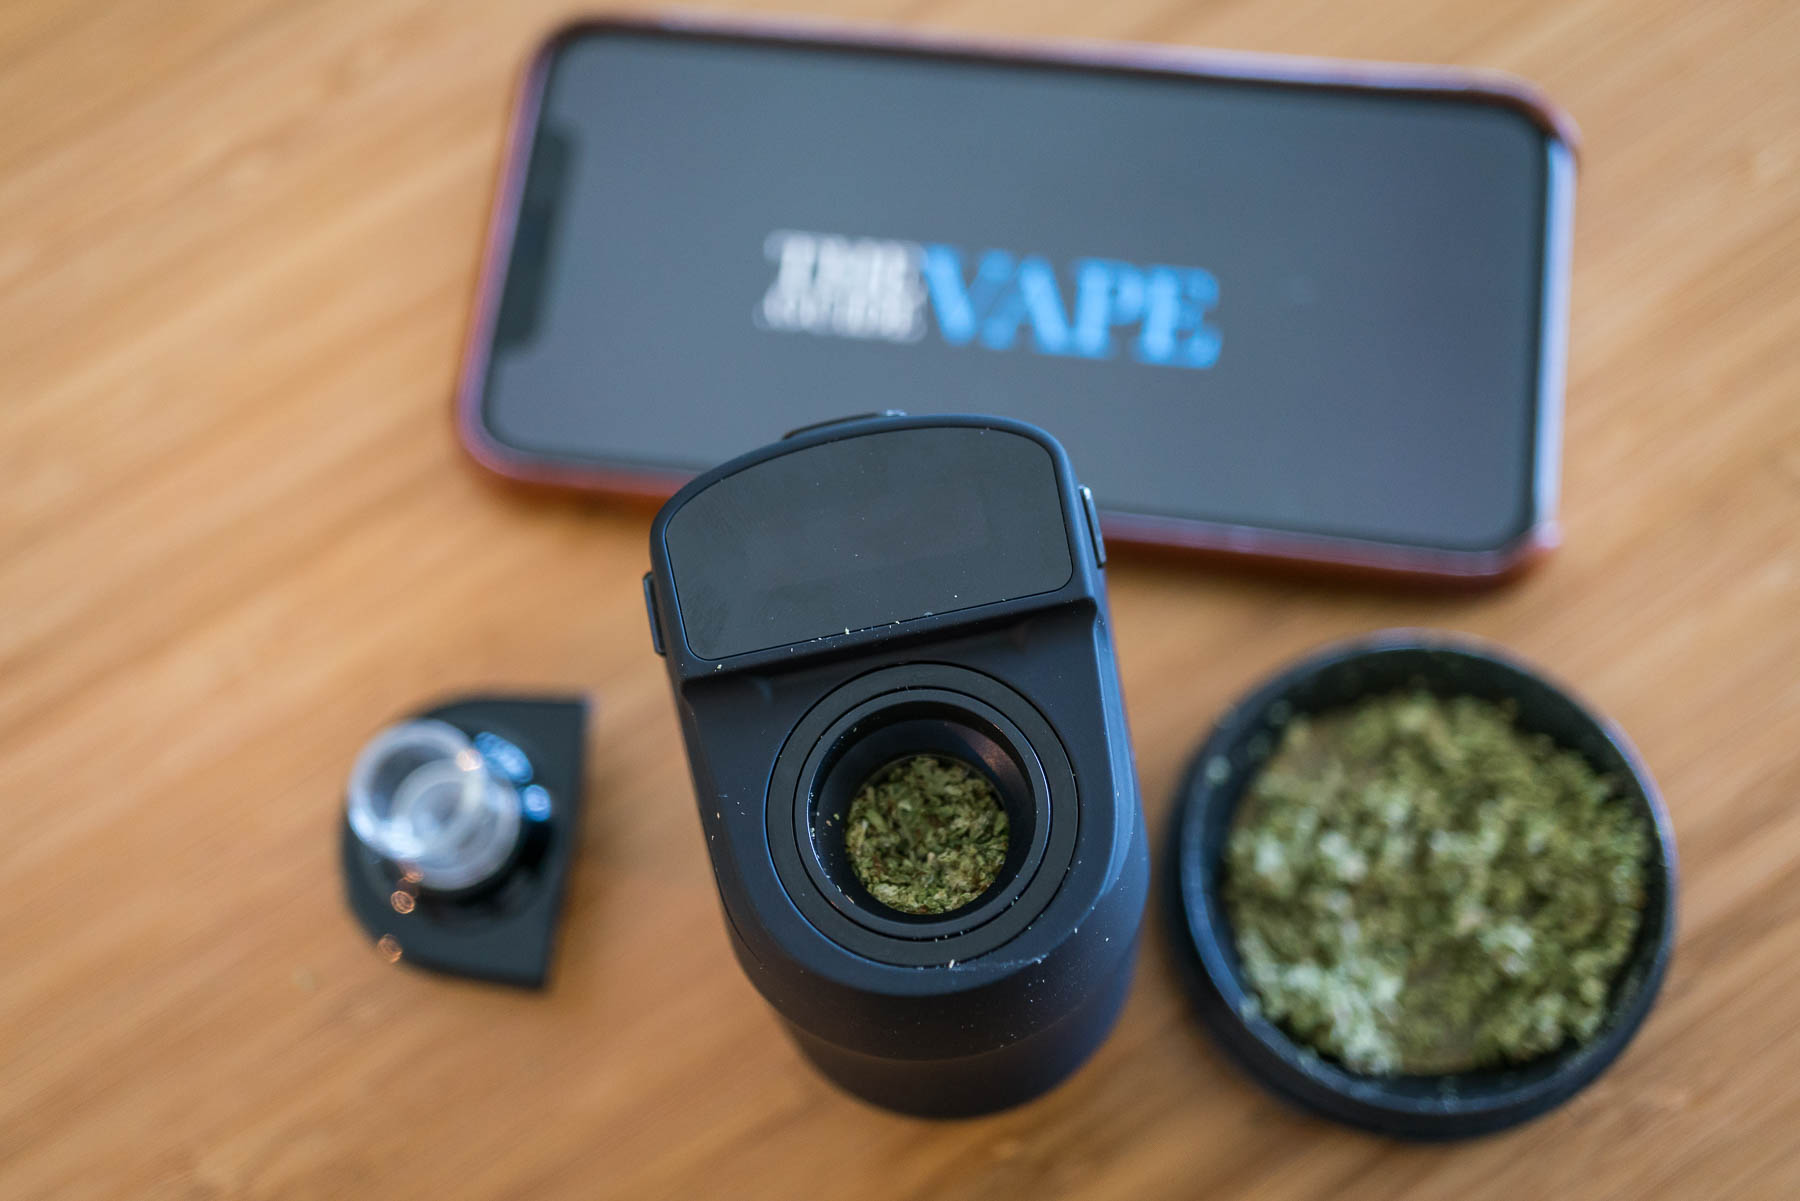 Heating Methods Of Dry Herb Vaporizers: From Conduction to